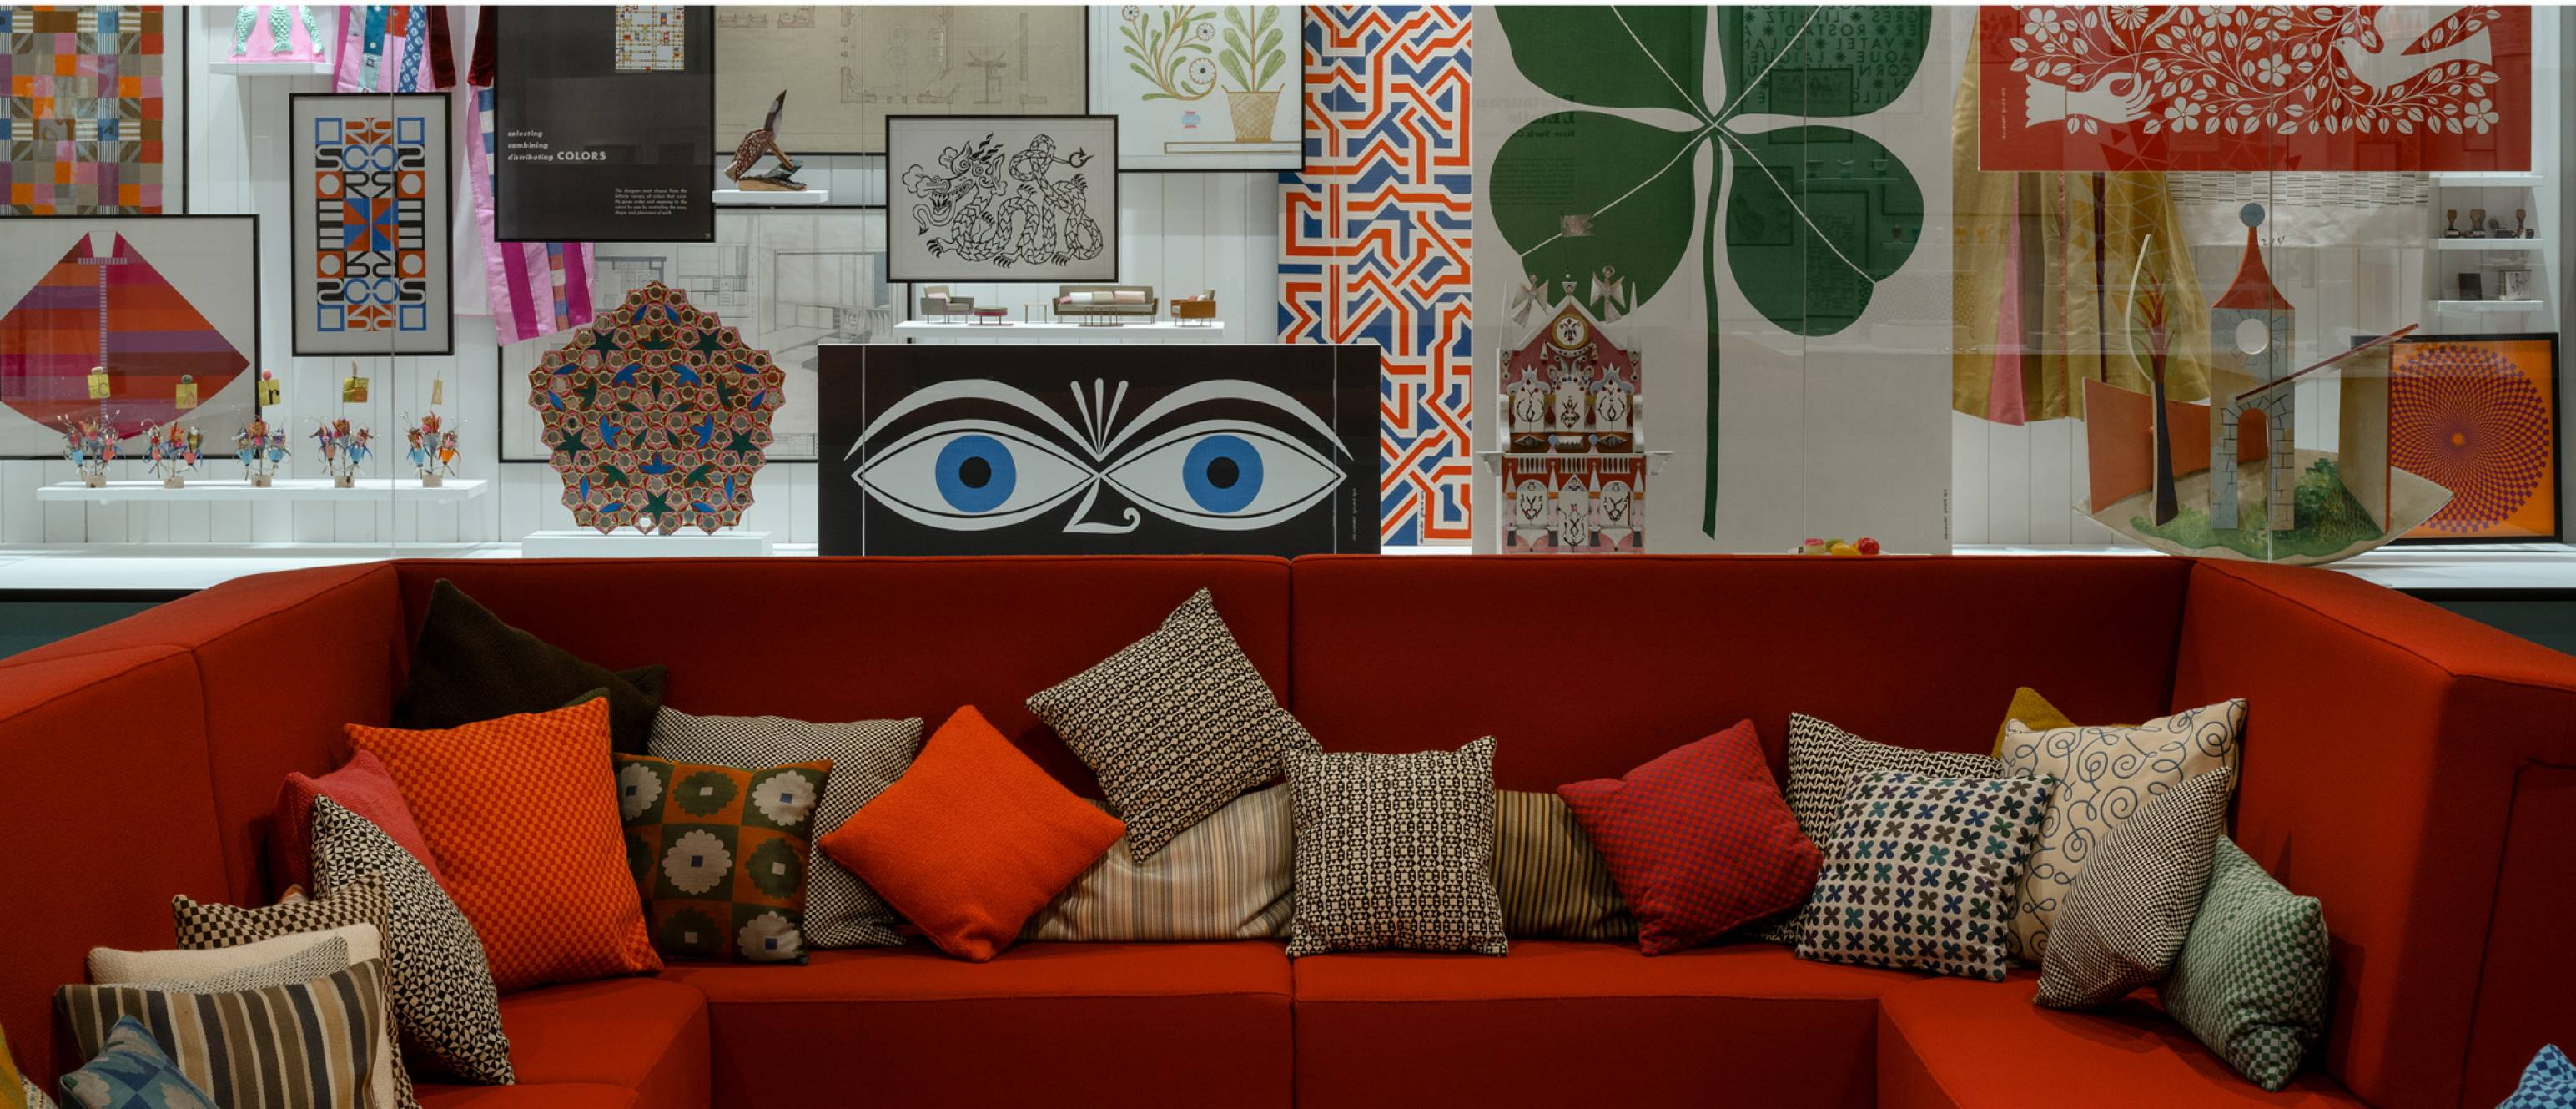 Alexander Girard exhibition, conversation pit with glass gallery in the back